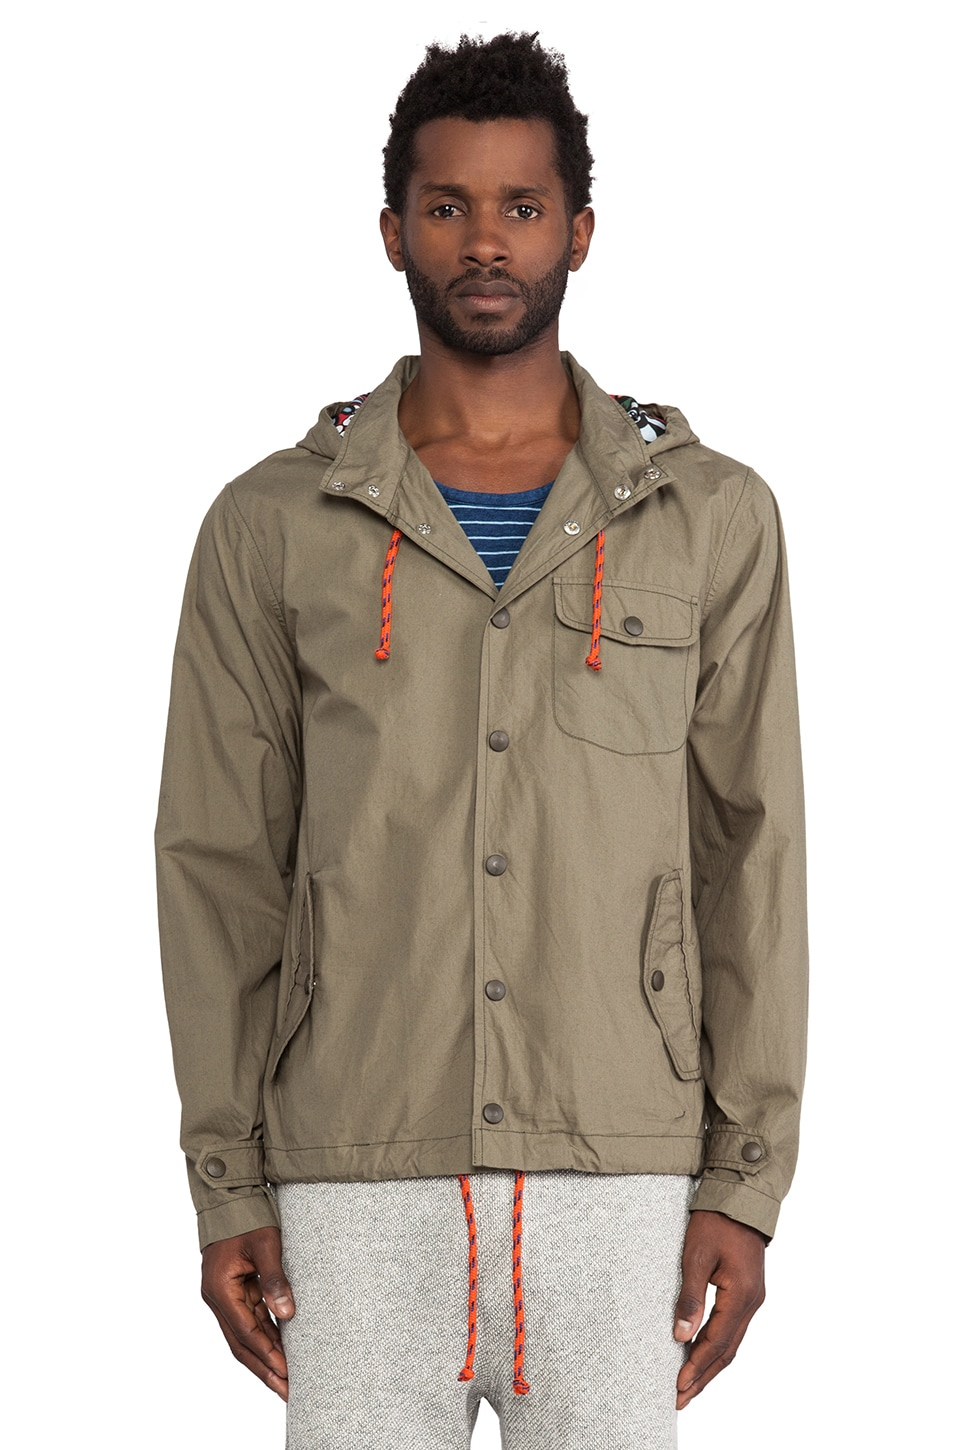 Burkman Bros. Snap Front Jacket in Olive